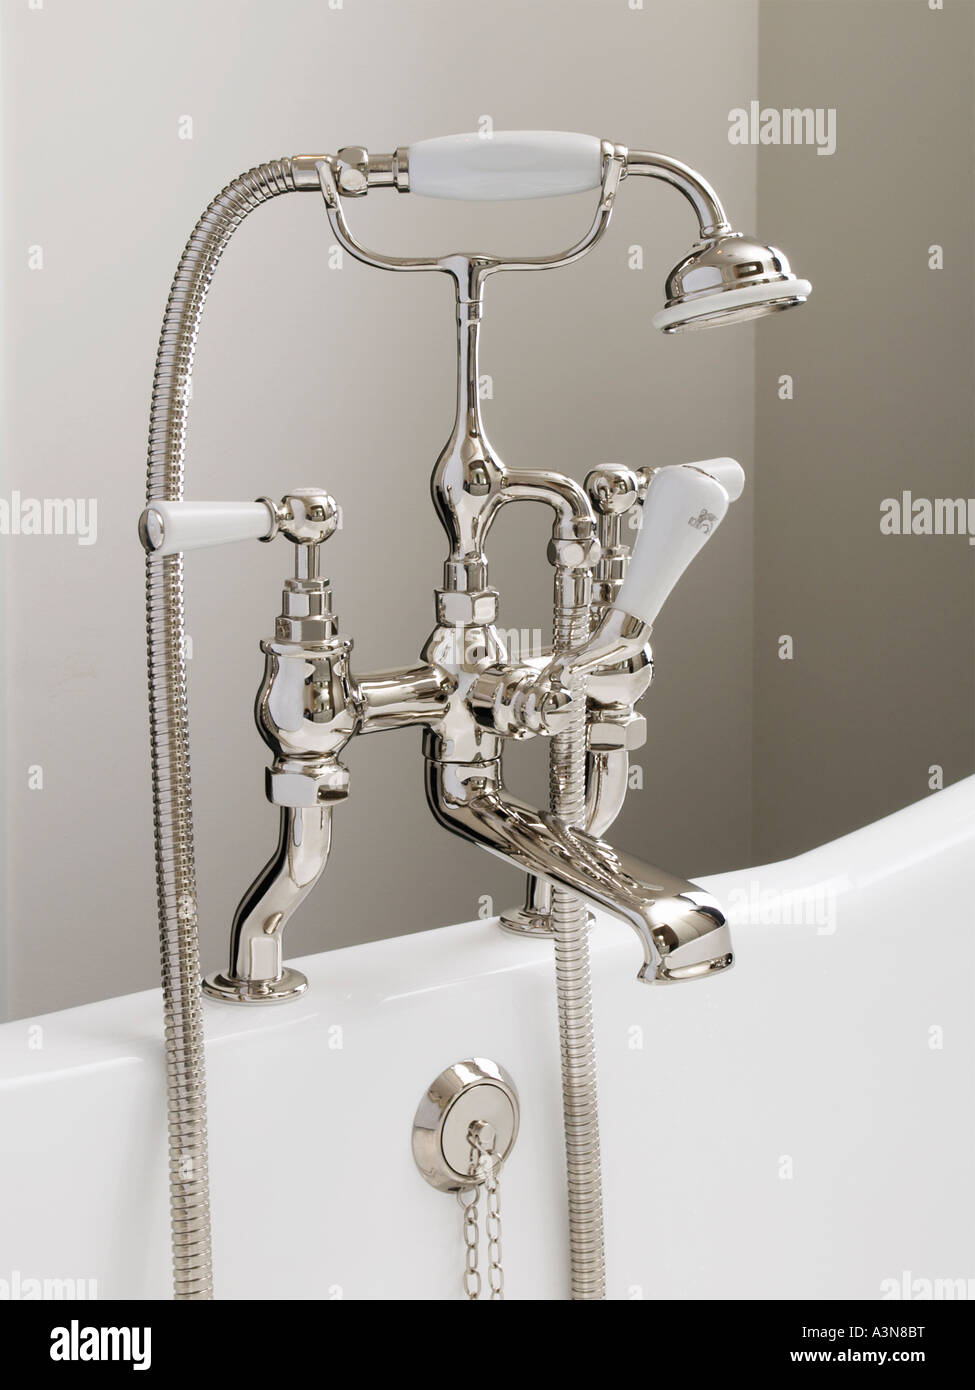 Luxury classic design tap bathroom faucet chrome silver standing on edge of bath - Stock Image